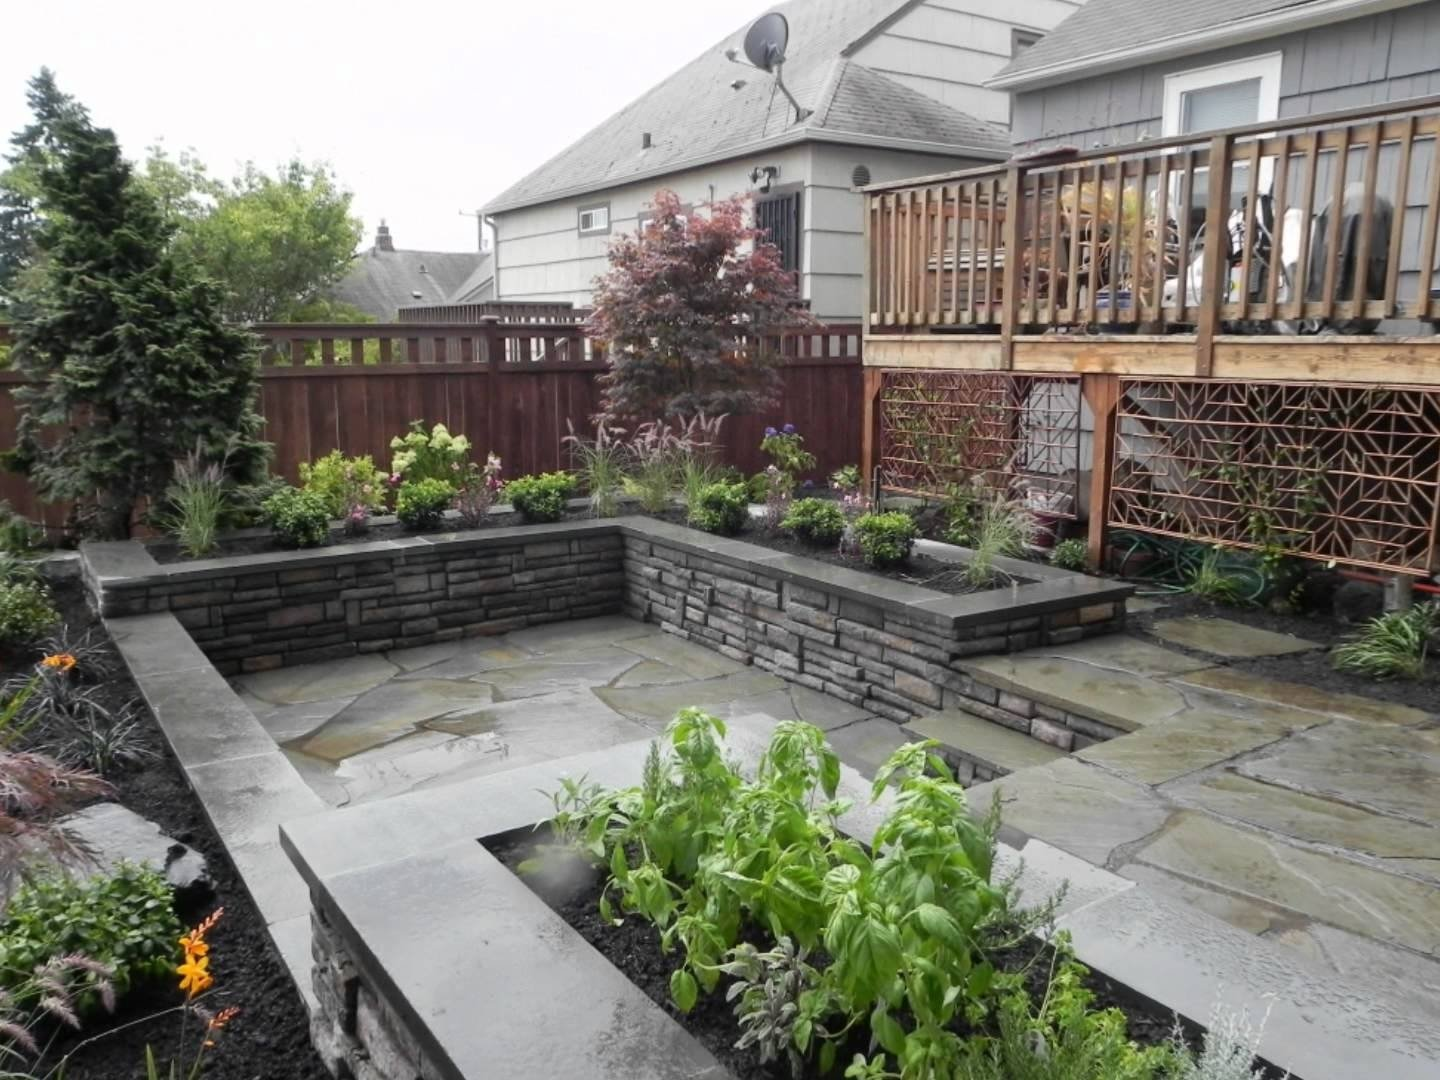 10 Attractive Landscaping Ideas For Small Areas landscaping ideas for a small space youtube 1 2021